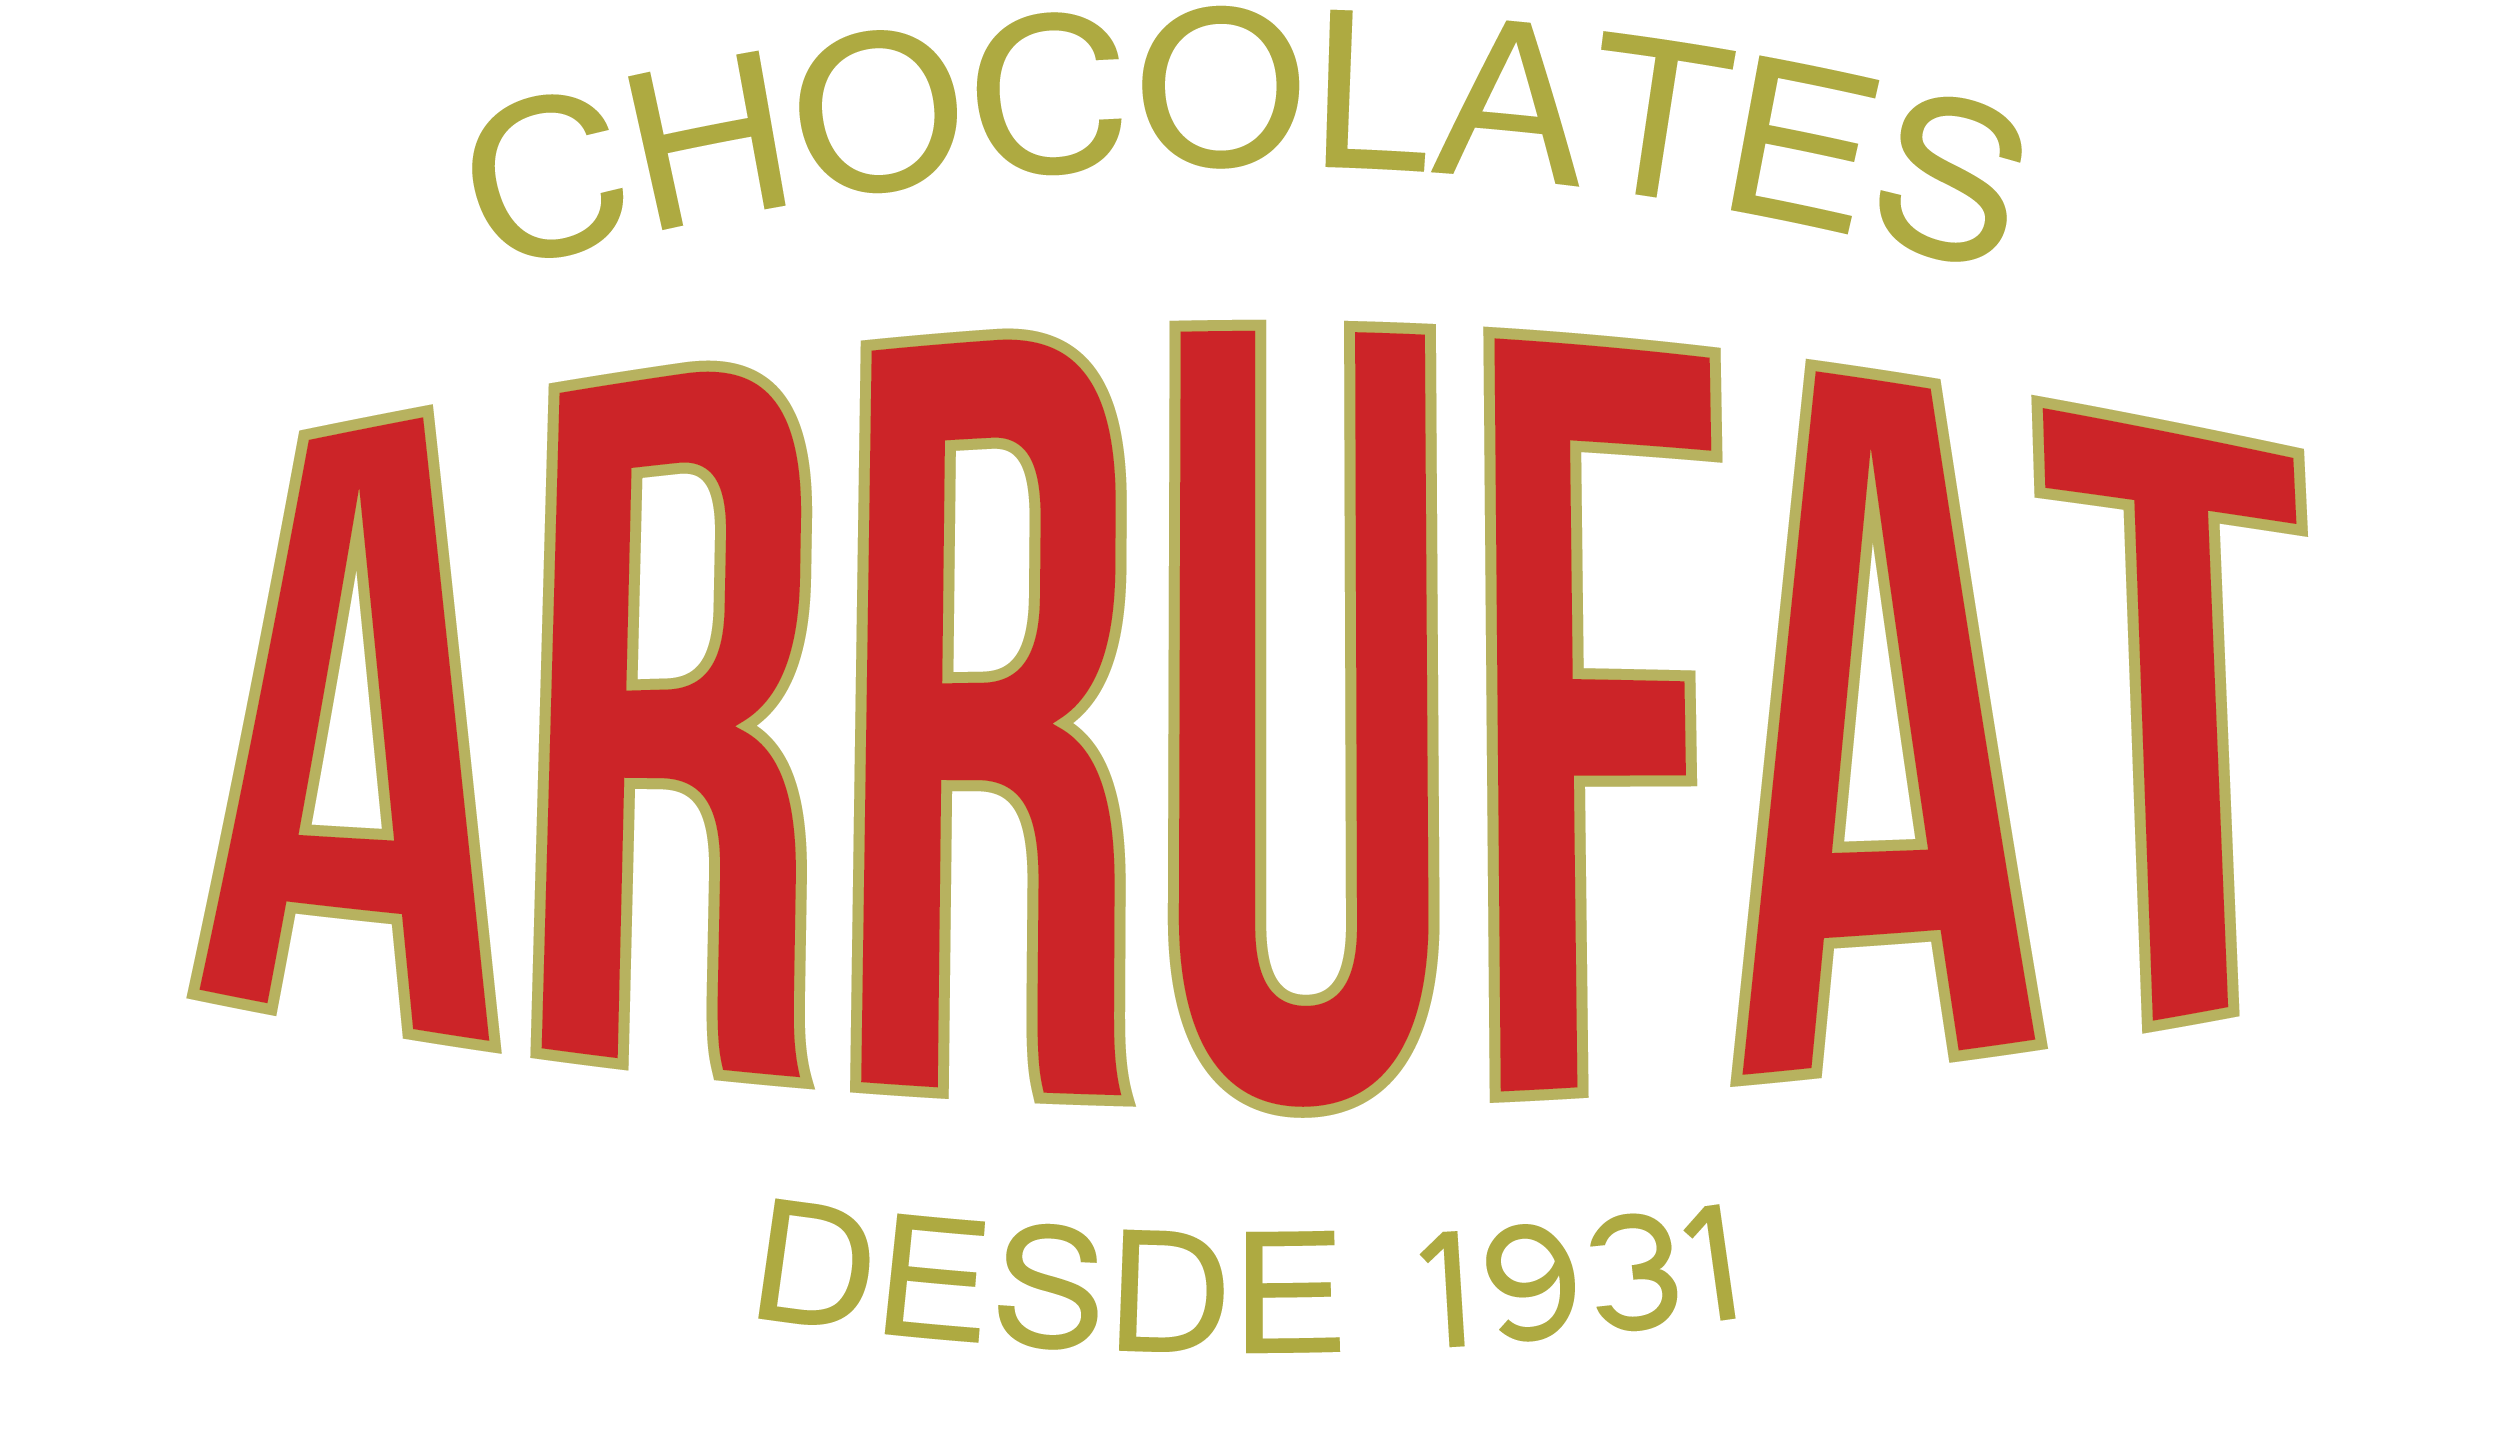 Chocolates Arrufat